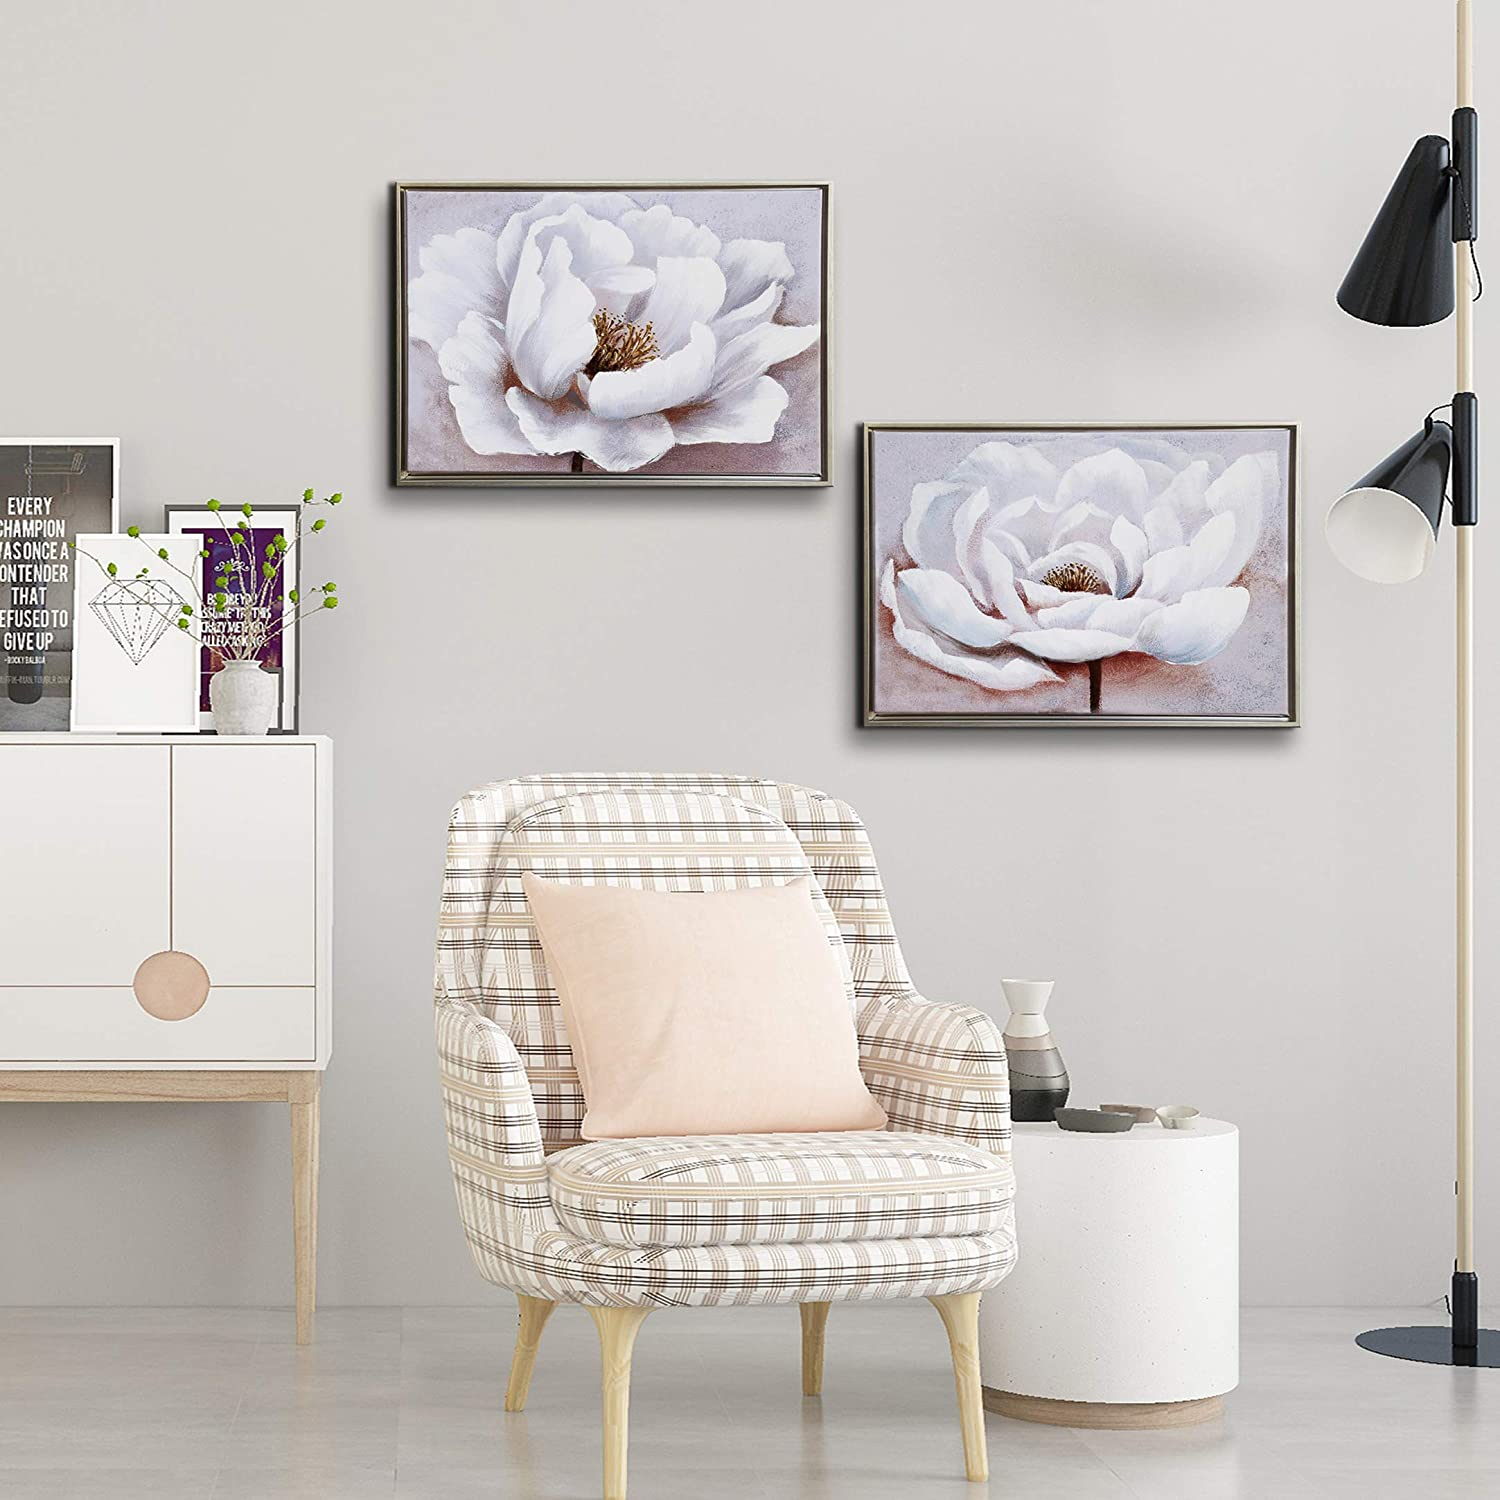 Tremendous Flower Canvas Wall Art For Living Room Modern Silver Framed Artwork Bedroom Wall Decor White And Pink Floral Painting Blooming White Flower Home Download Free Architecture Designs Itiscsunscenecom